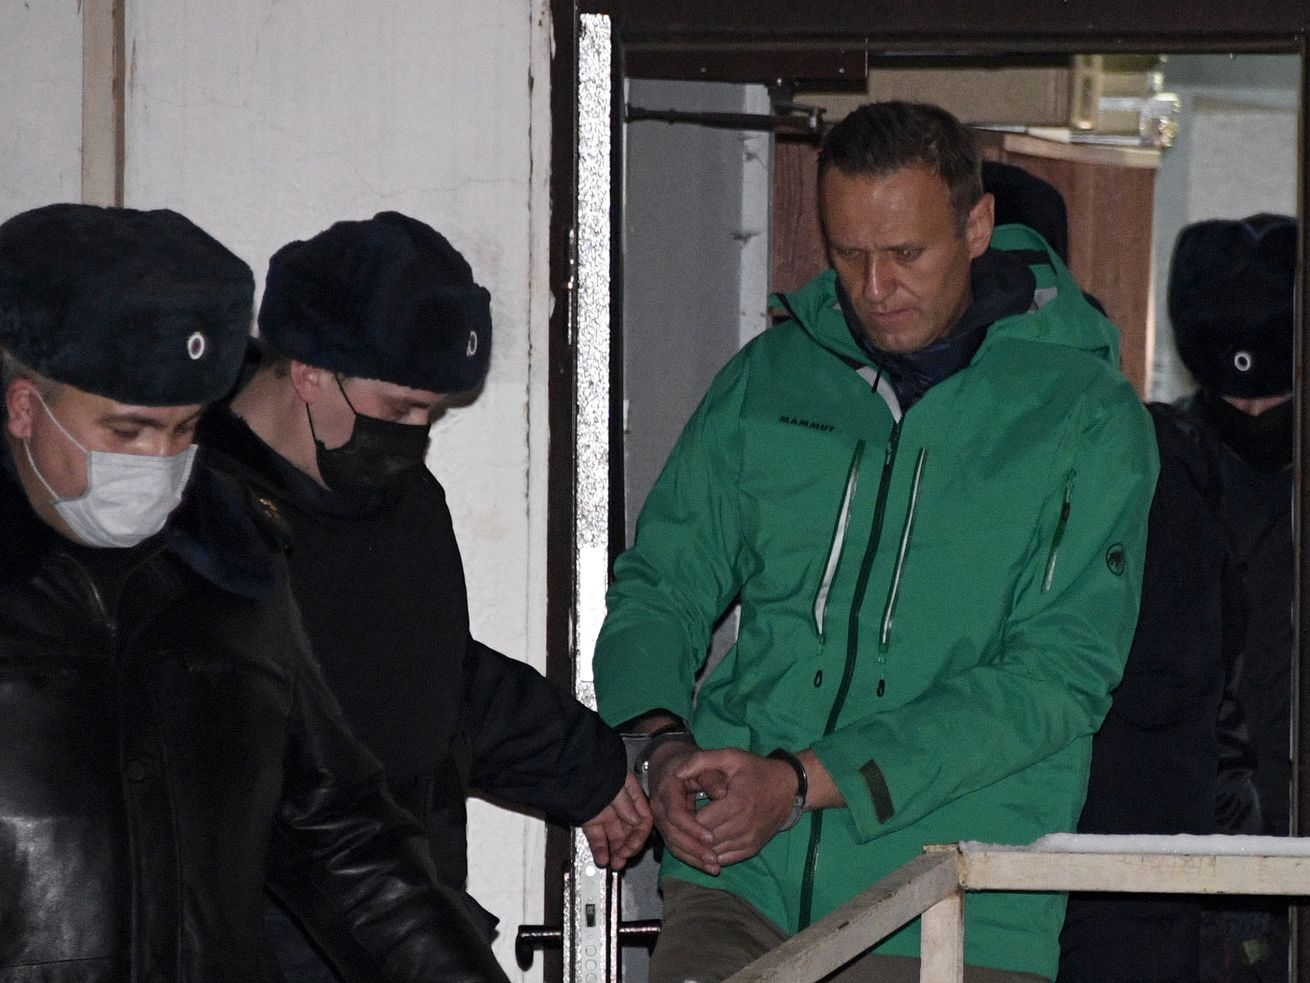 US to sanction Russian officials over the attempted murder of Alexei Navalny